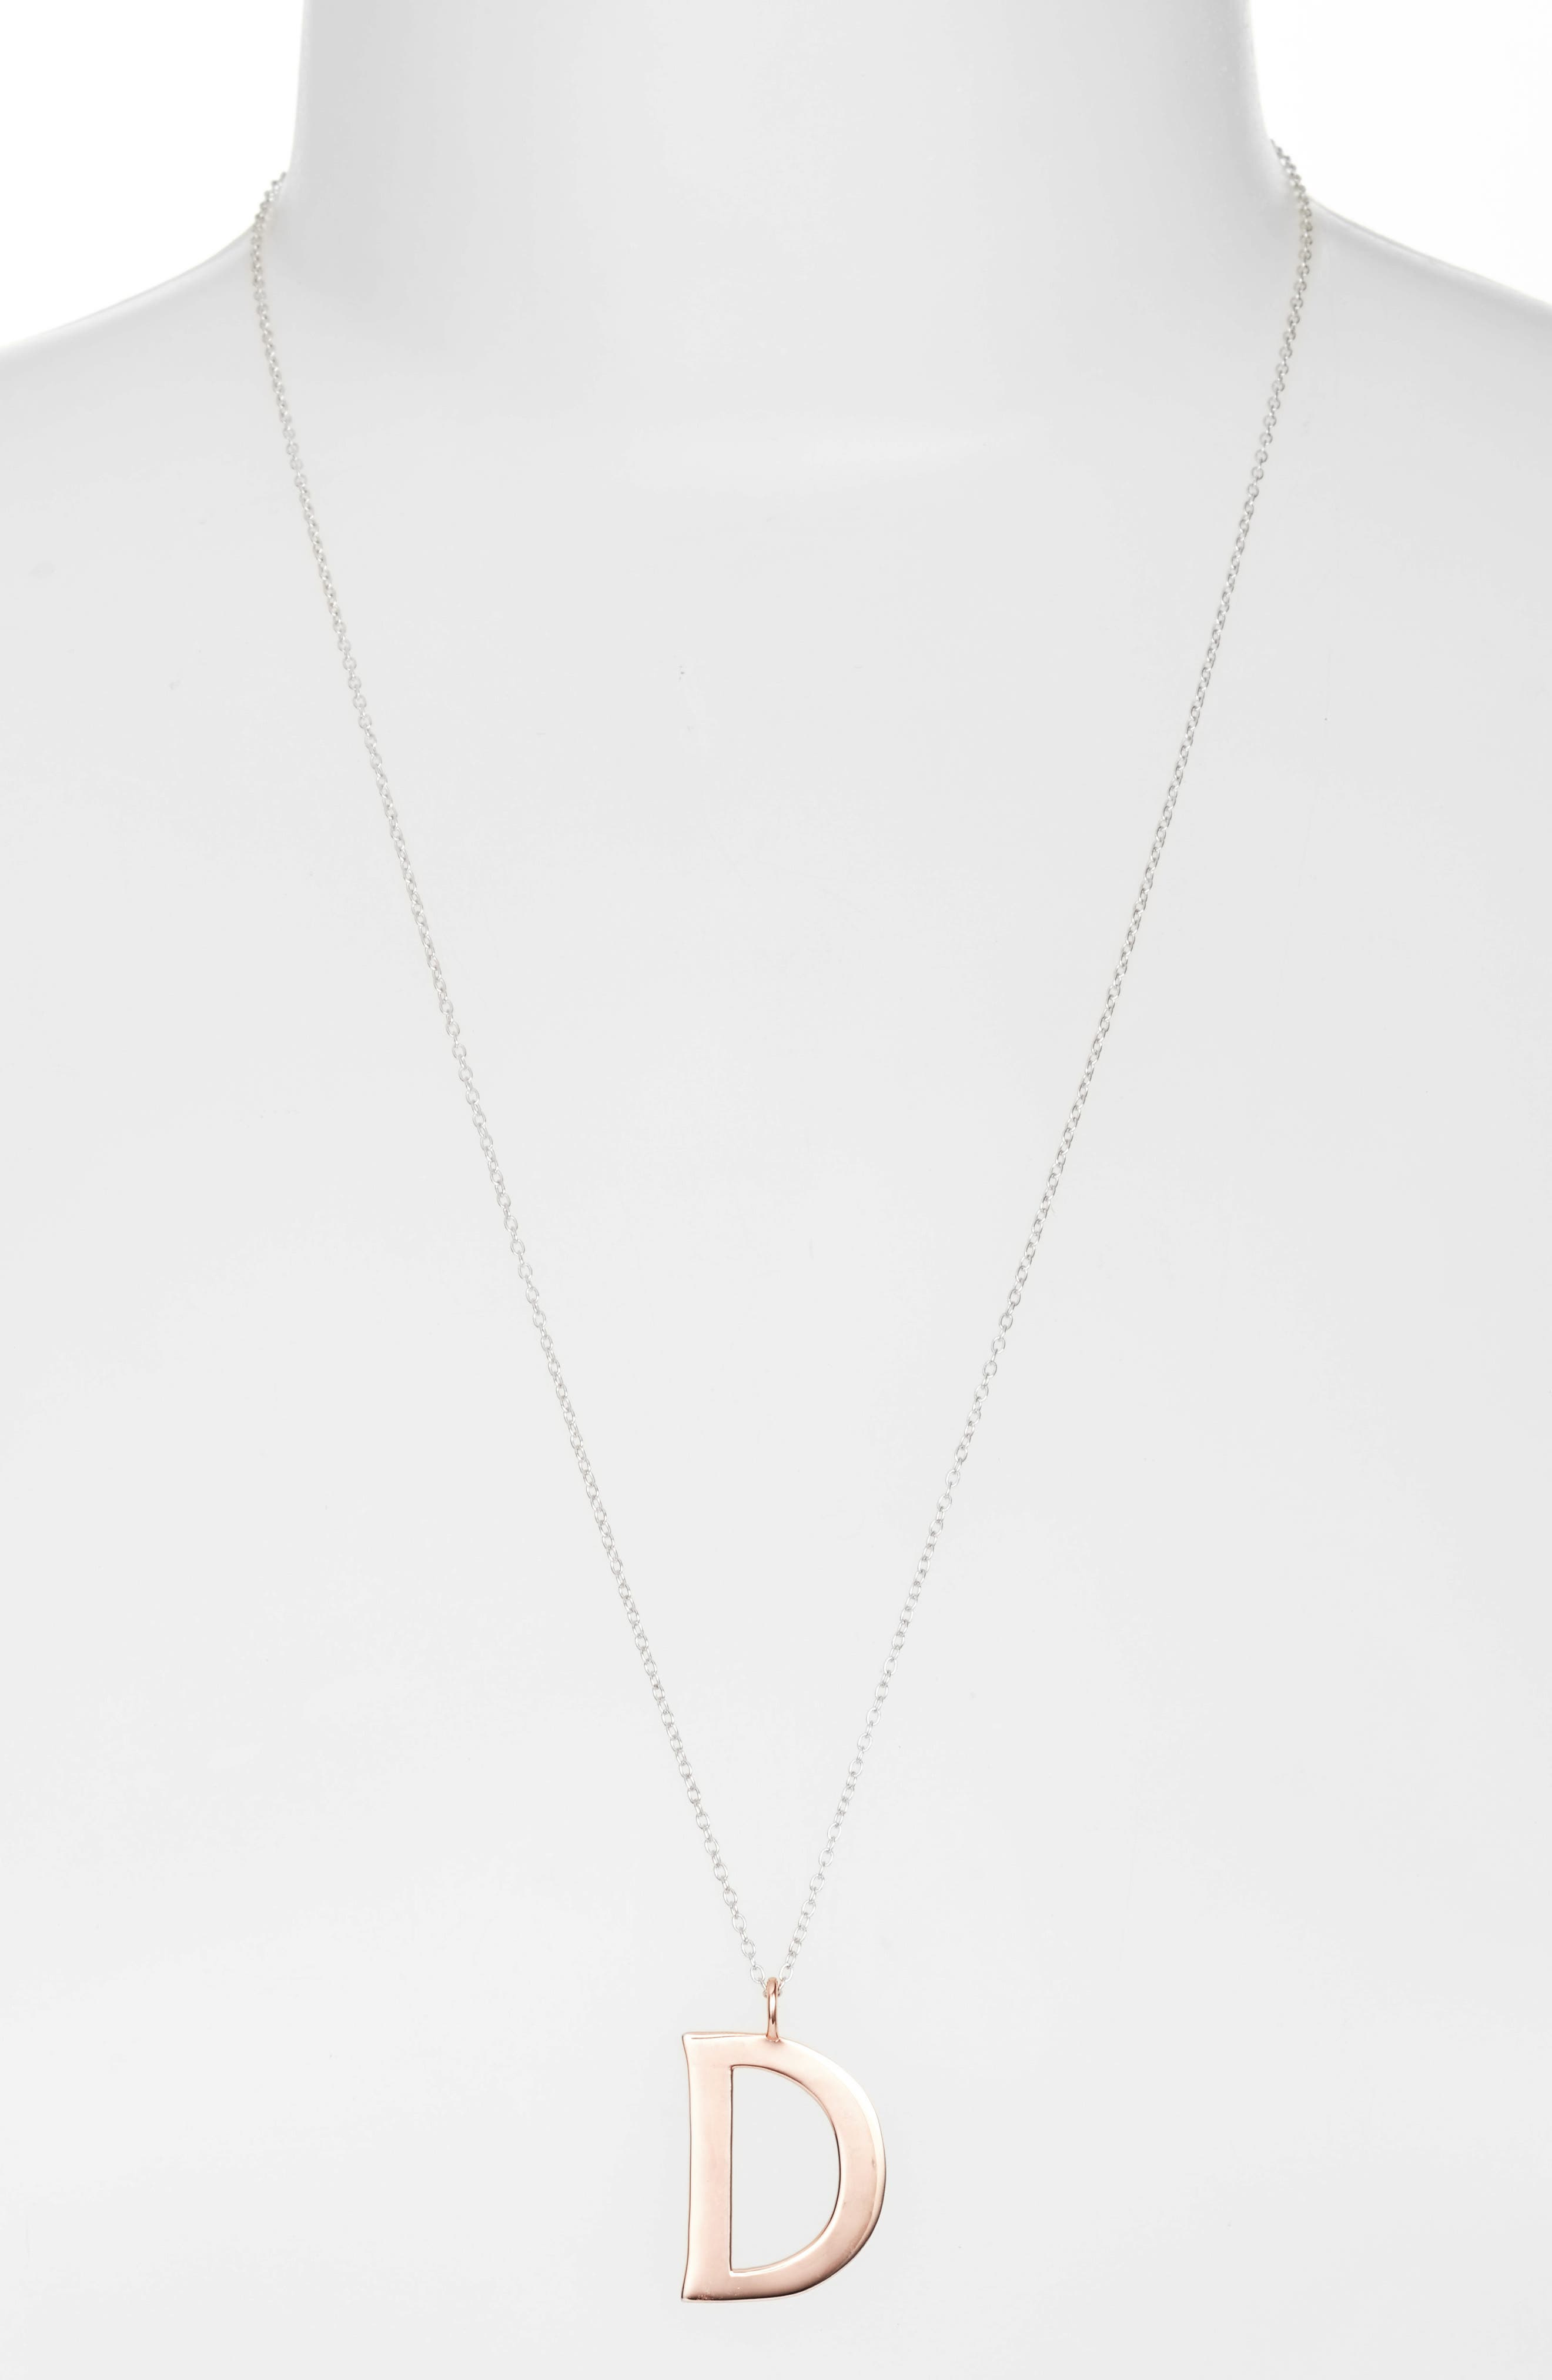 Initial Pendant Necklace,                         Main,                         color, Rose Gold / Silver - D